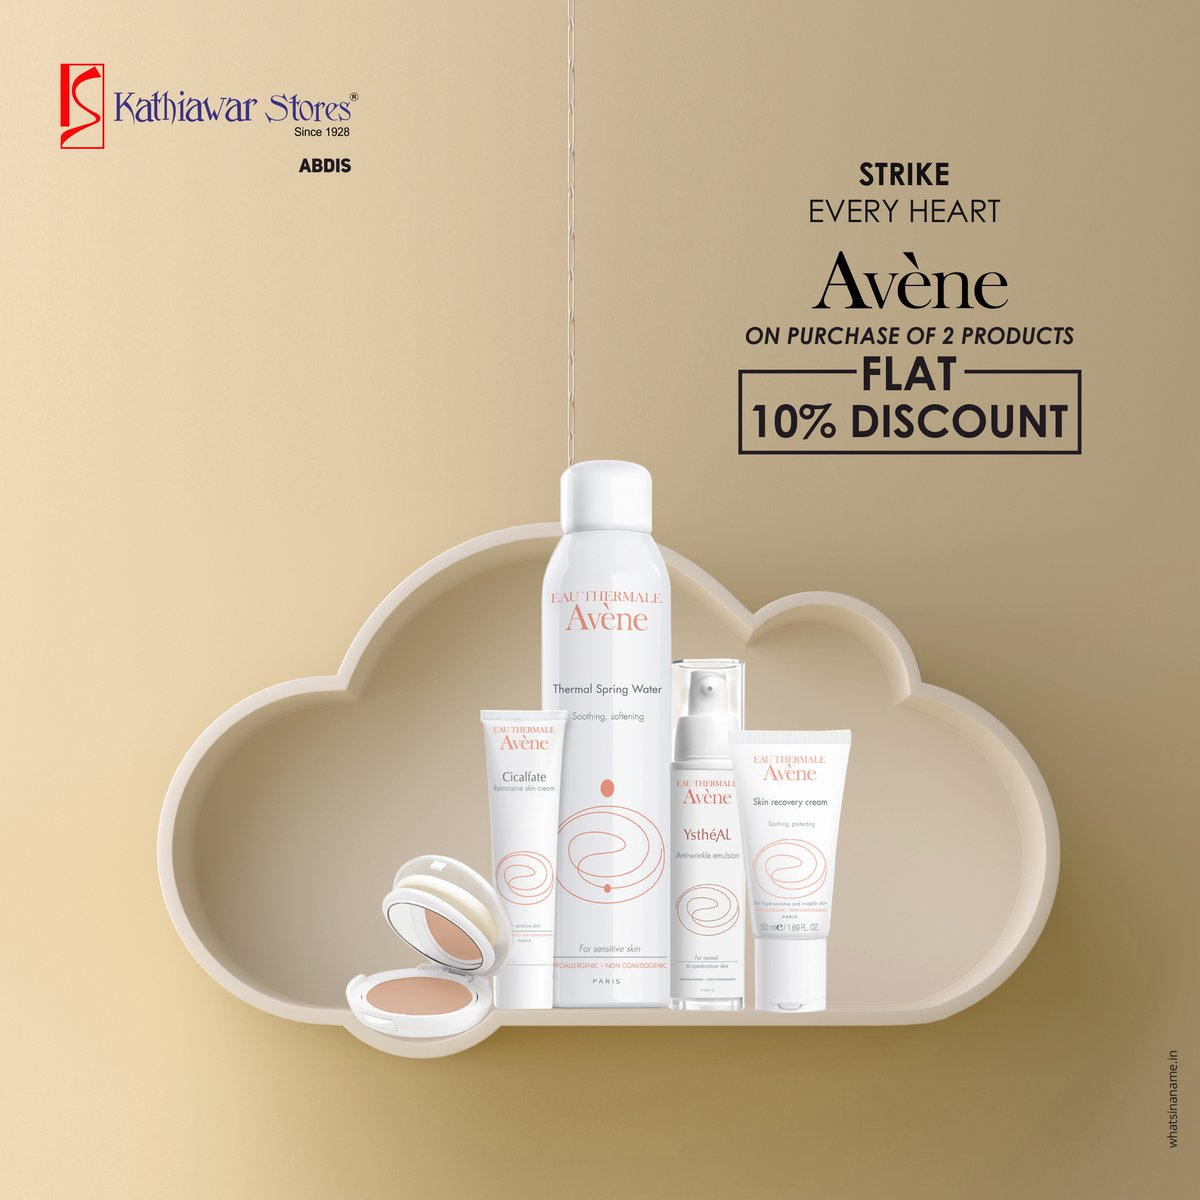 On purchase of any 2 Aveneproducts, get 10% off. Limited period offer at our Abids branch. Visit us soon.   #Avene #kathiawarstores #hyderabad #beautyshopping #Offers #Kathiawar #KathiawarStores #LatestTrends #Fashion #Trends#Beauty #Branded